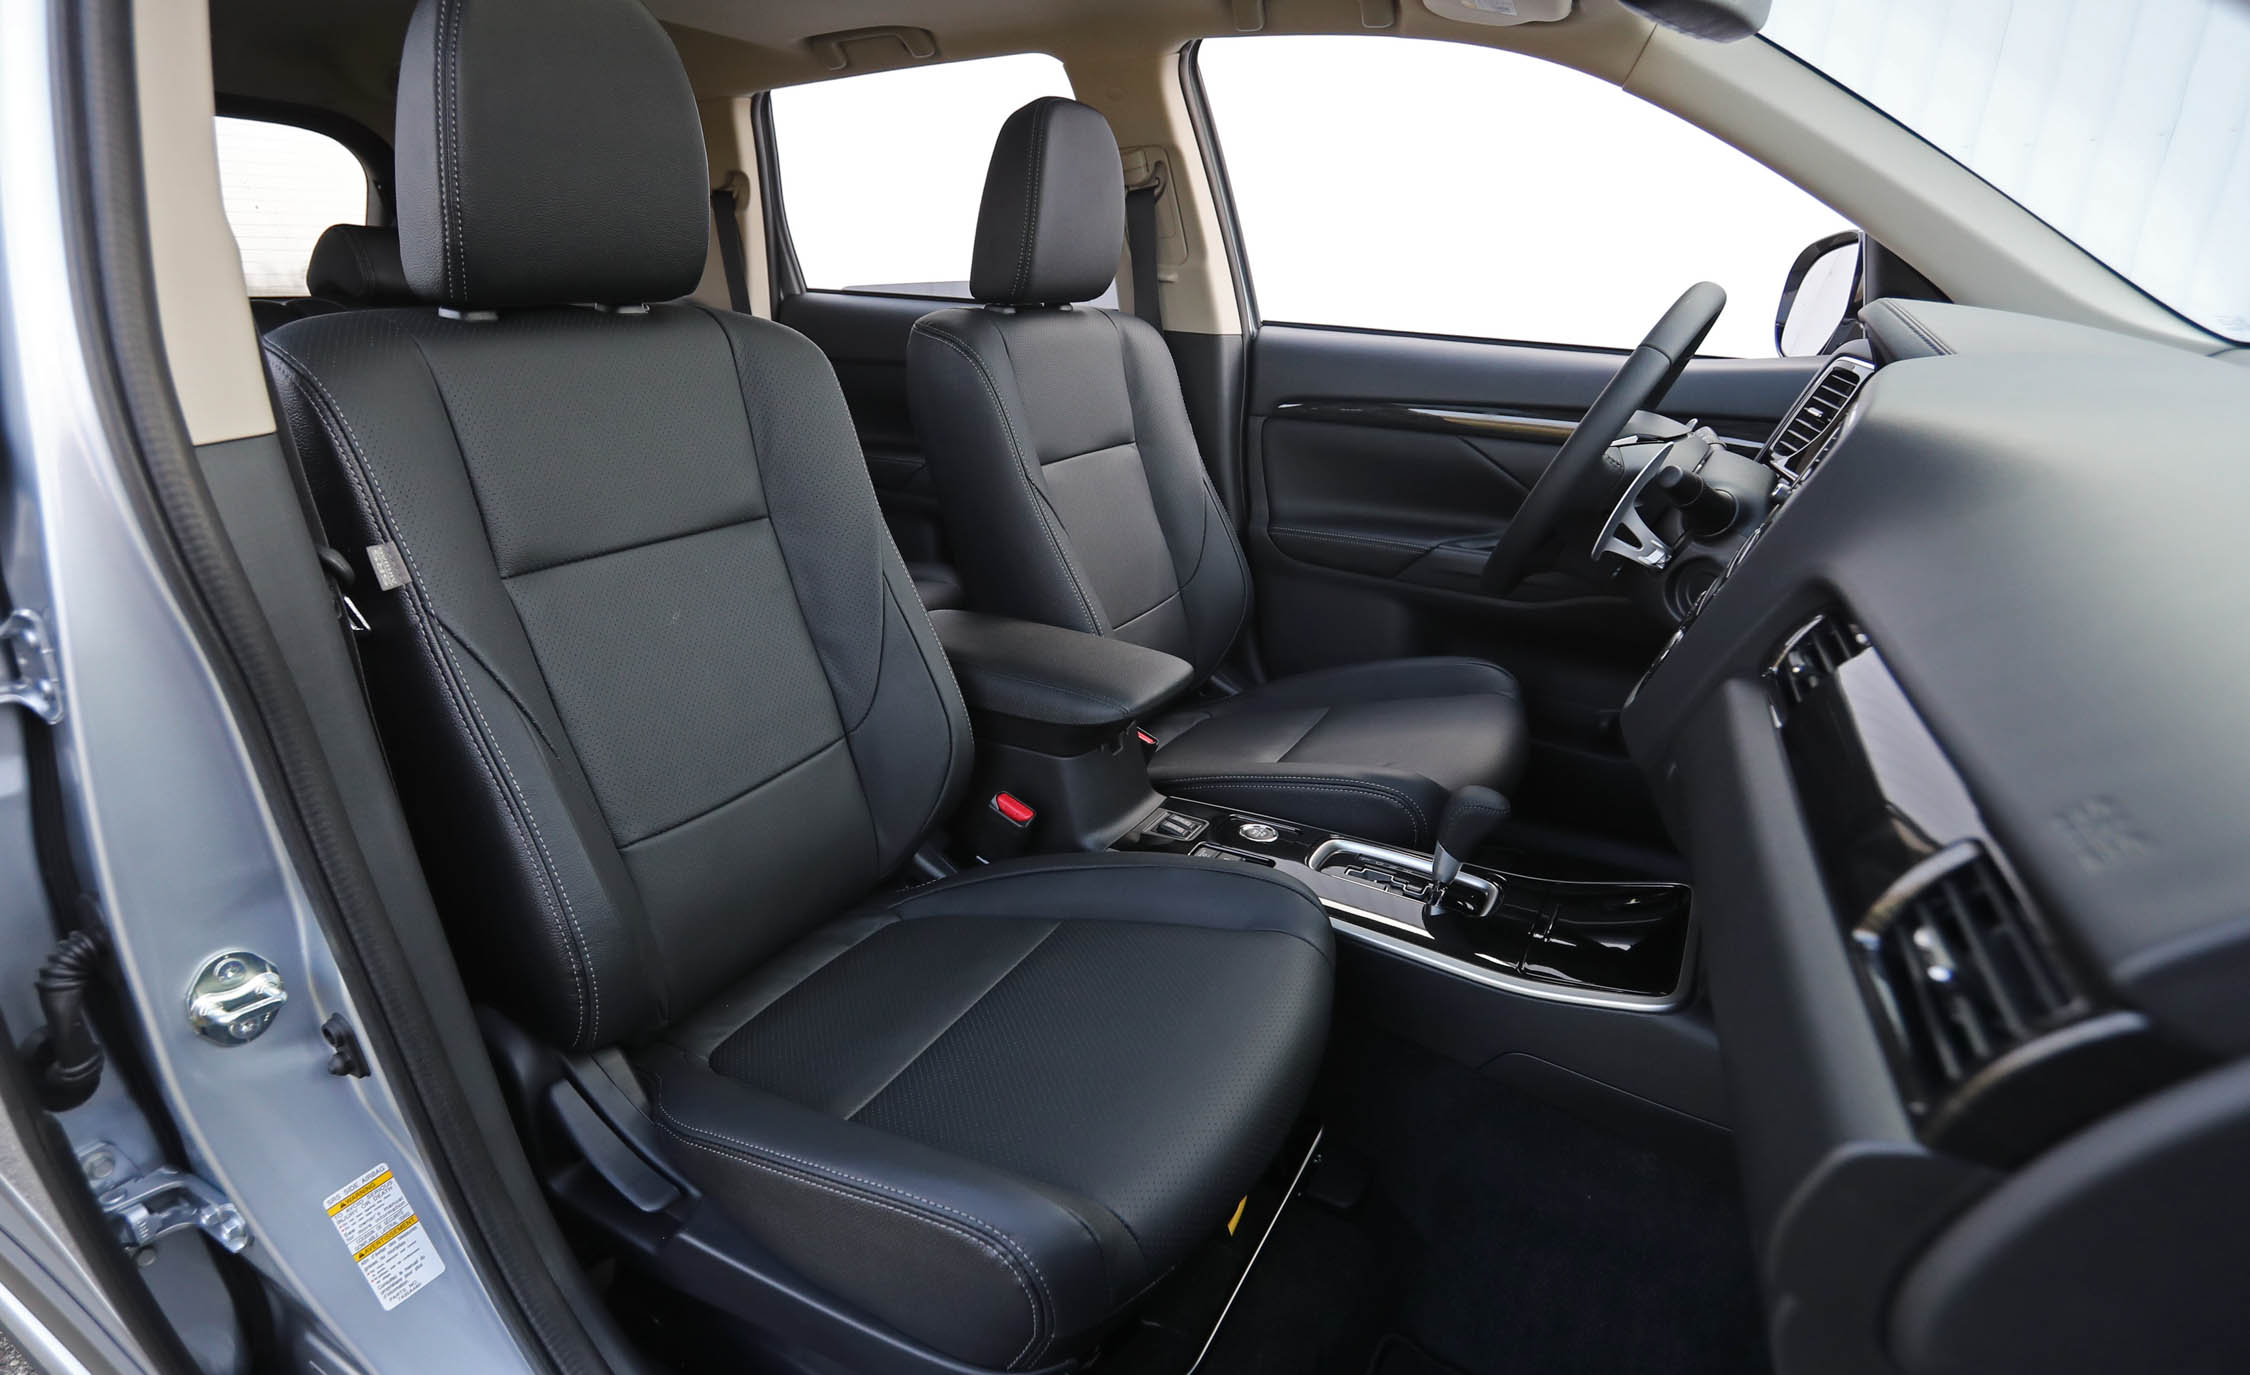 2017 Mitsubishi Outlander Gt Interior Seats Front (View 19 of 34)